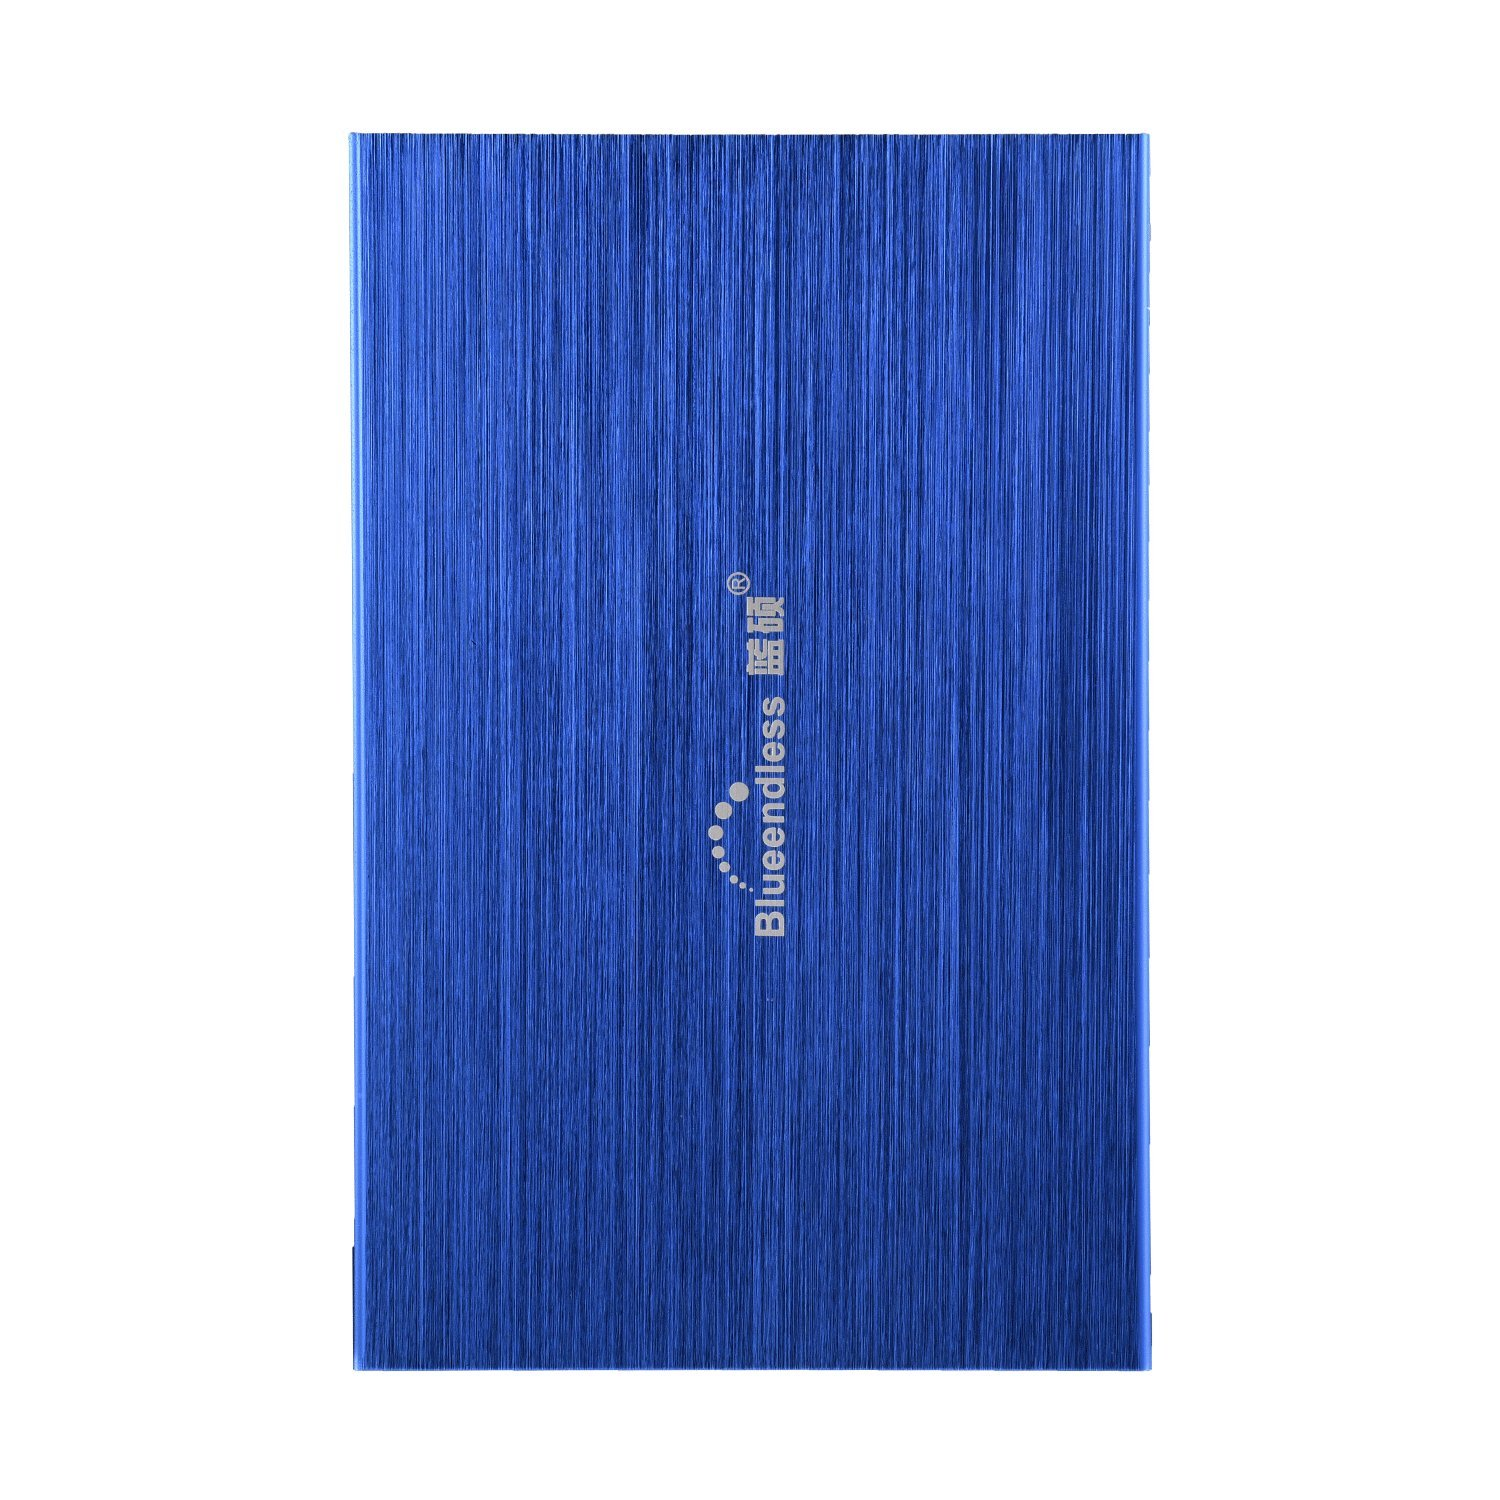 Blueendless 160GB Portable External Hard Drive USB2.0 Hard Disk Storage Devices Desktop Laptop (Blue)